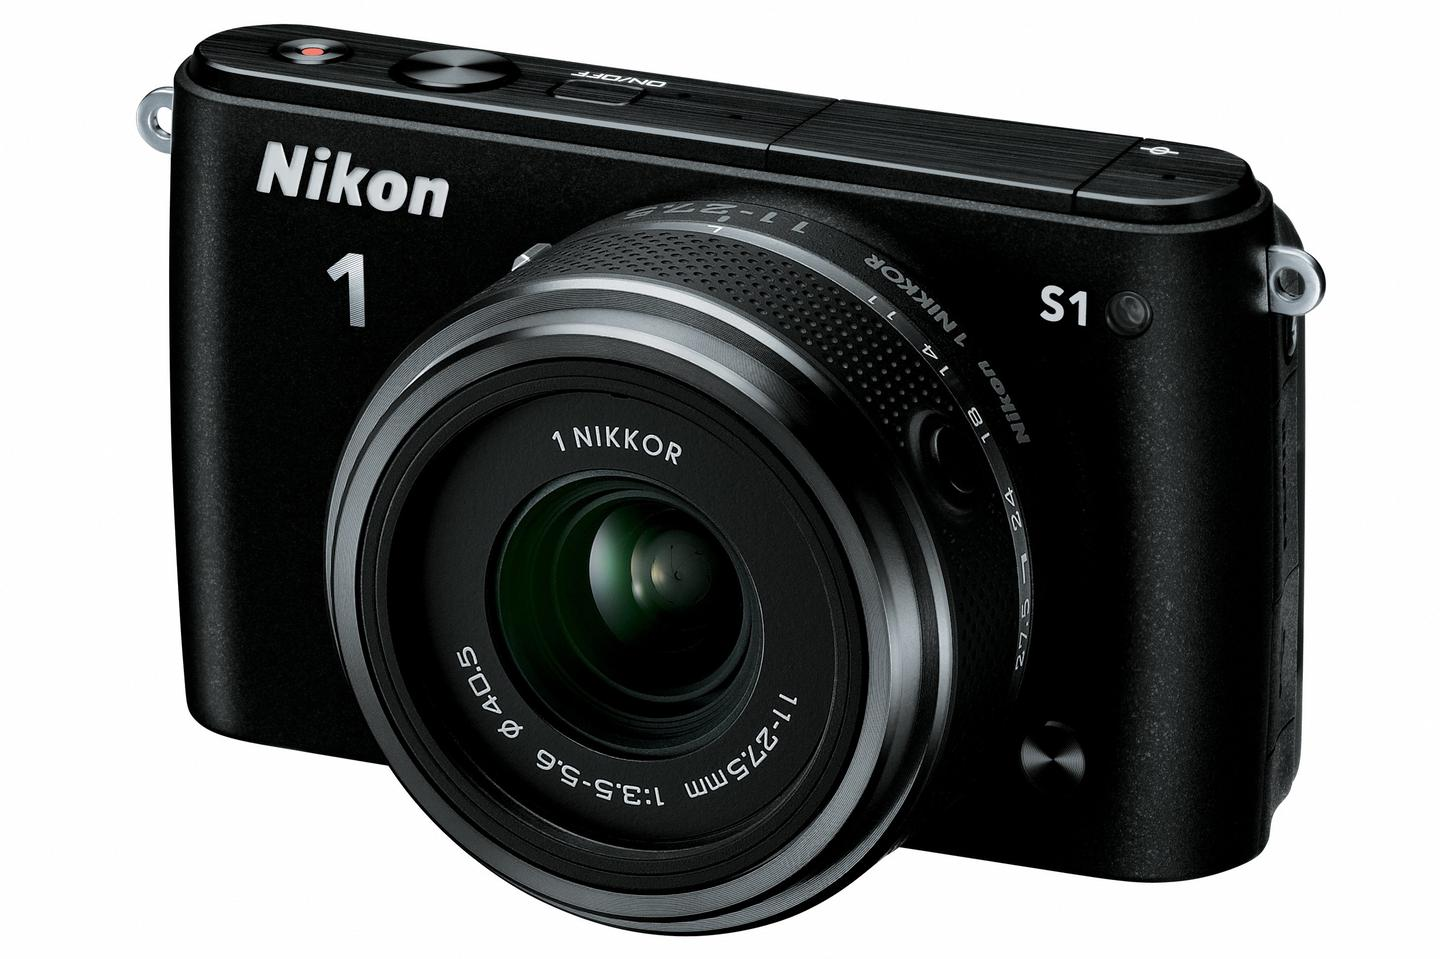 The Nikon 1 S1 sees Nikon attempting to appeal to a more entry-level demographic